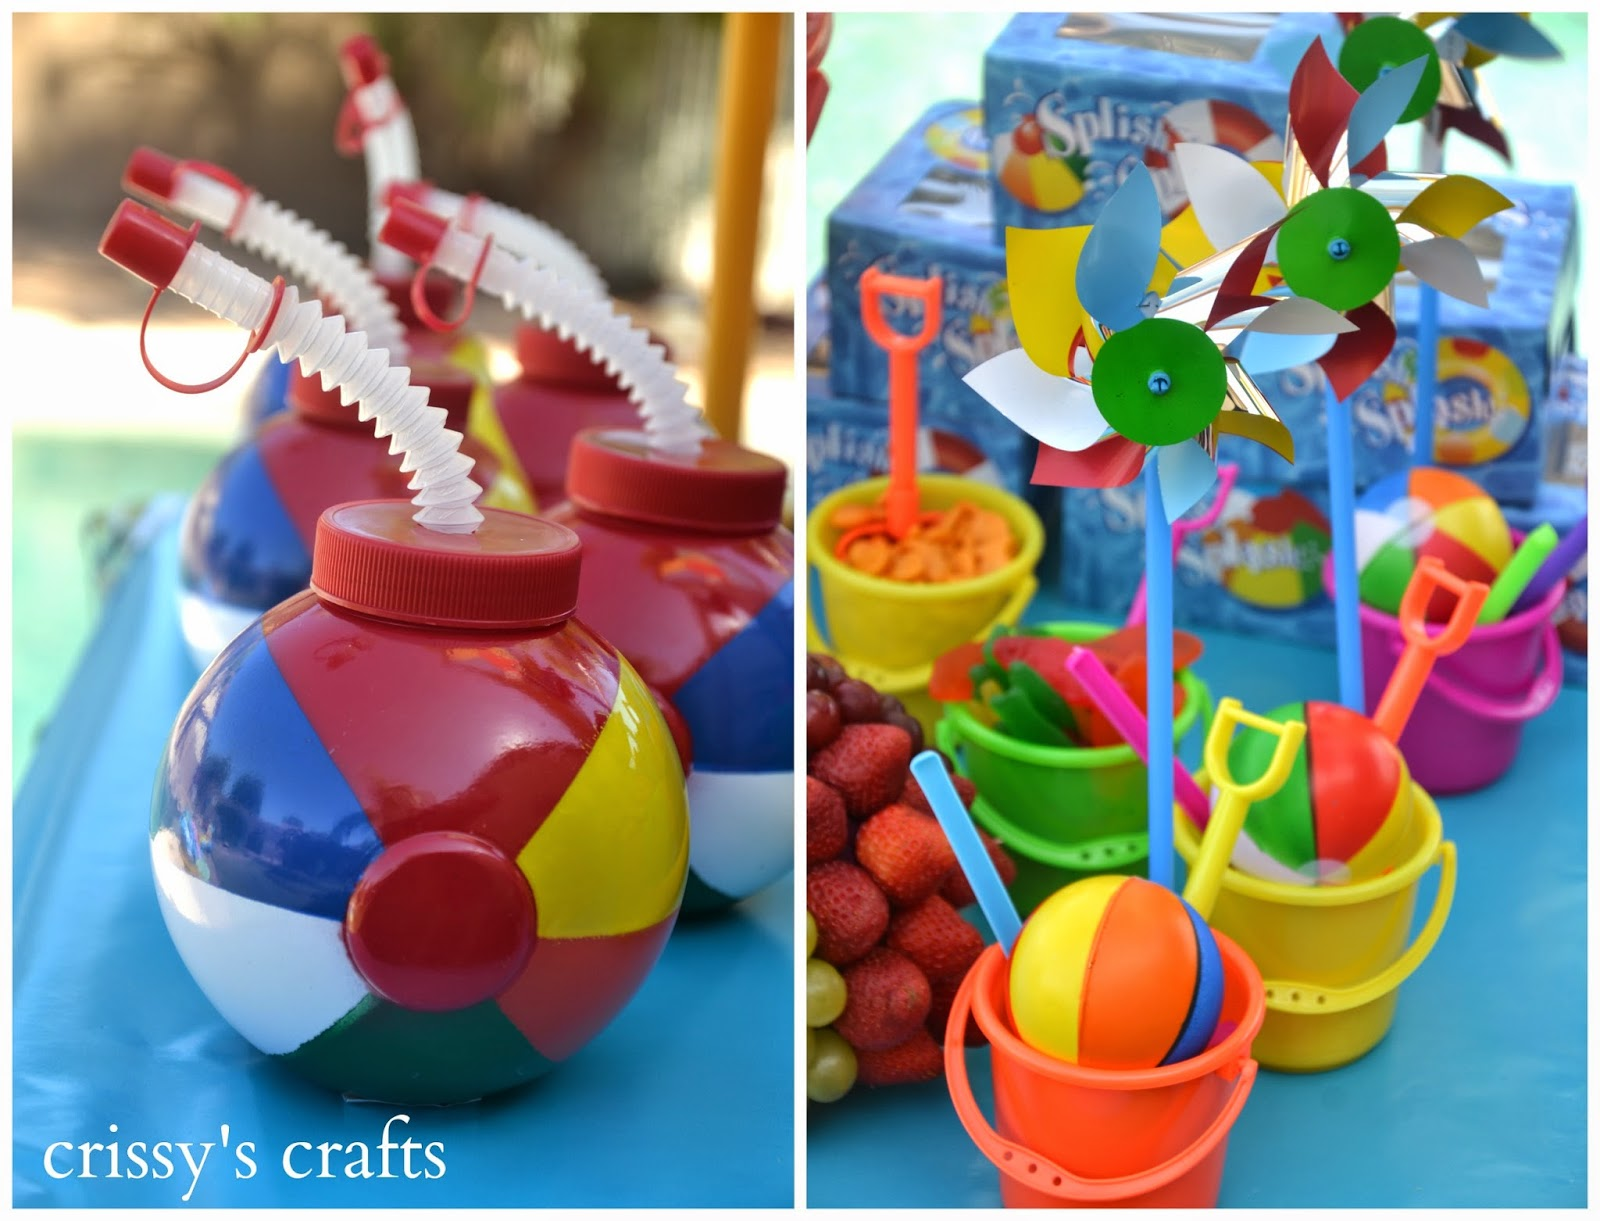 Pool Party Favors Ideas pool party favor ideas balloons n party decorations orange county balloon decorations birthday party favor ideas The Children Took Home Some Cool Favors Like Beach Ball Cups Beach Play Set Pinwheels And Mini Beach Balls